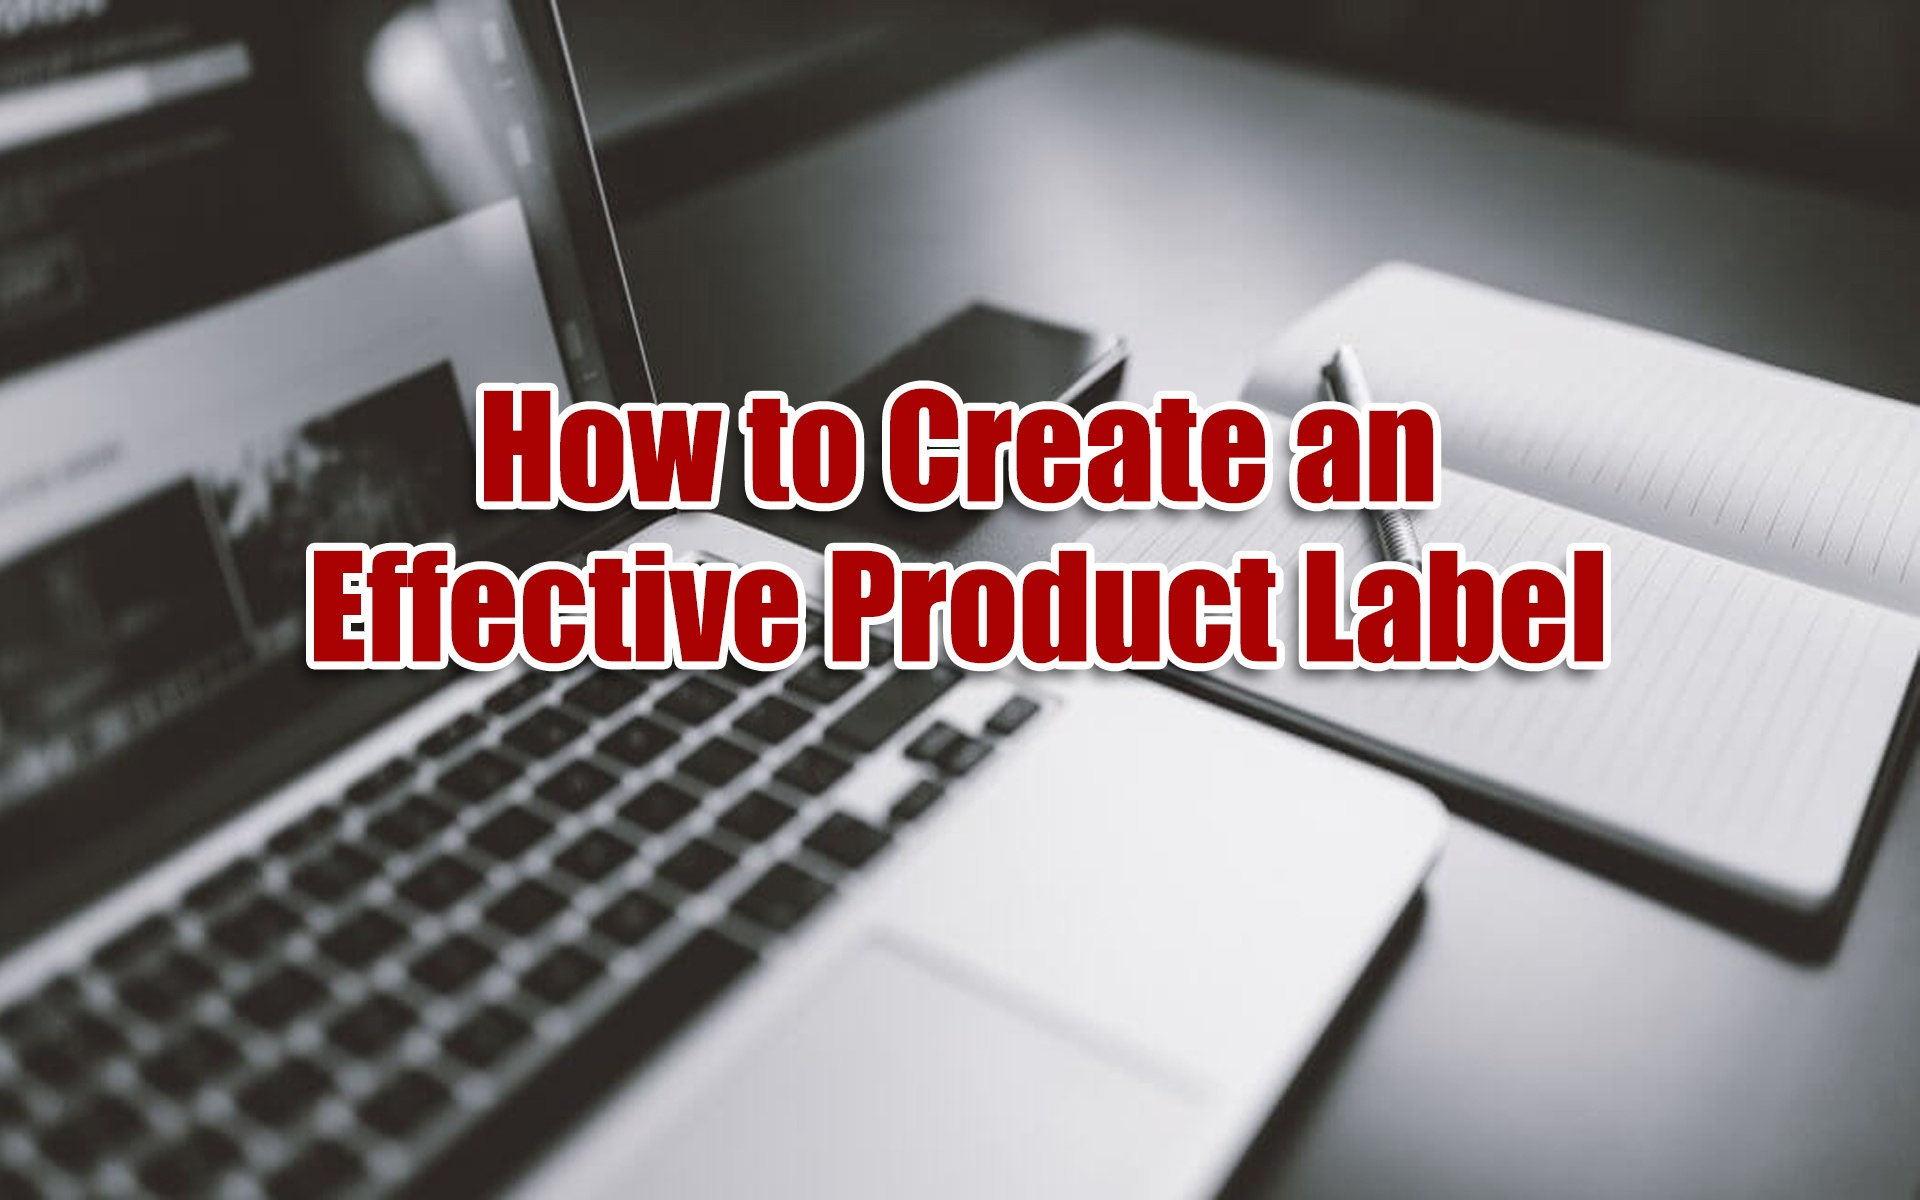 How to Create an Effective Product Label